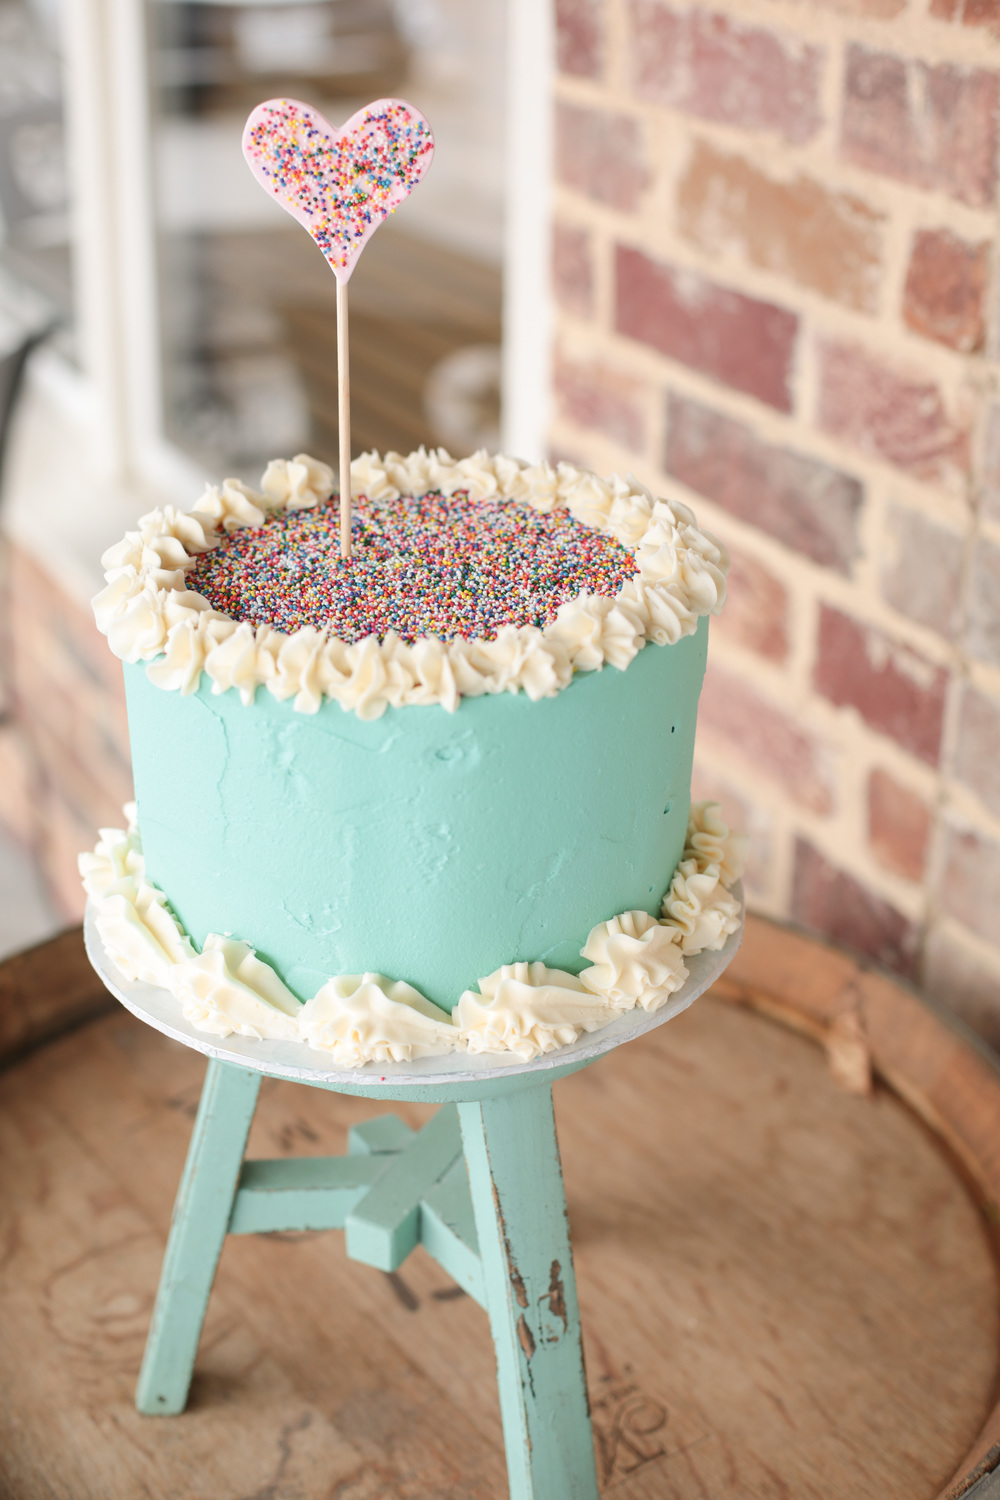 sugarbeesweets-signature-cake-unfinished-buttercream-sprinkles.jpg